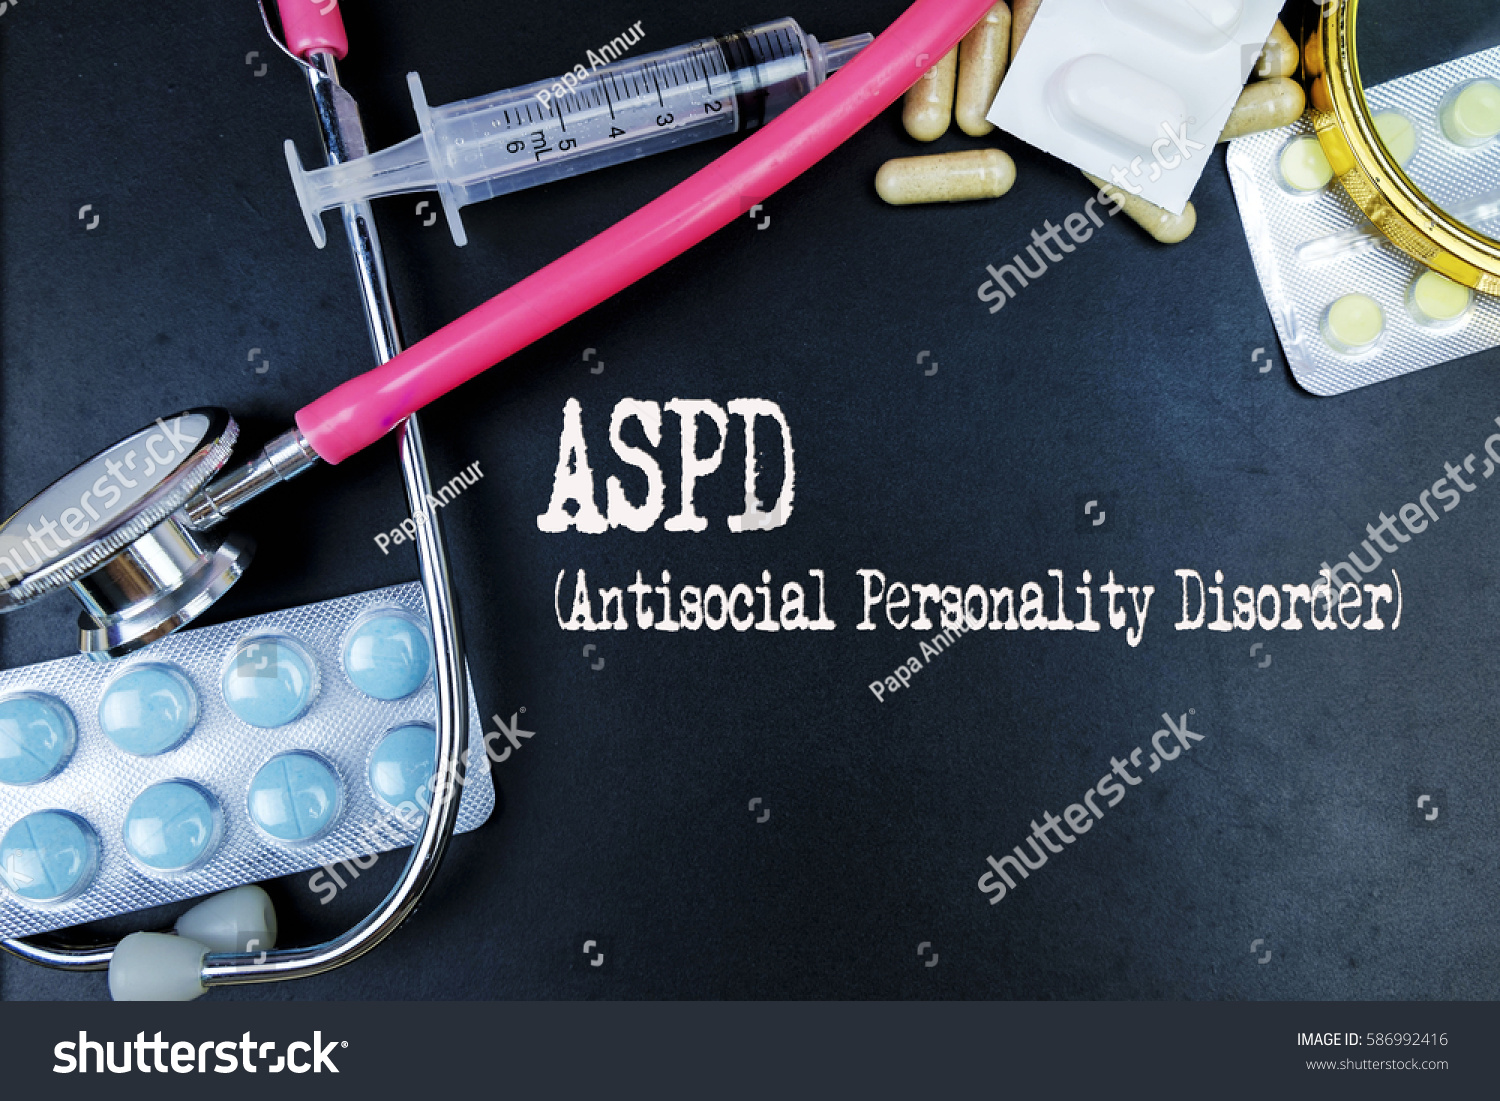 Aspd Antisocial Personality Disorder Word Medical Stock